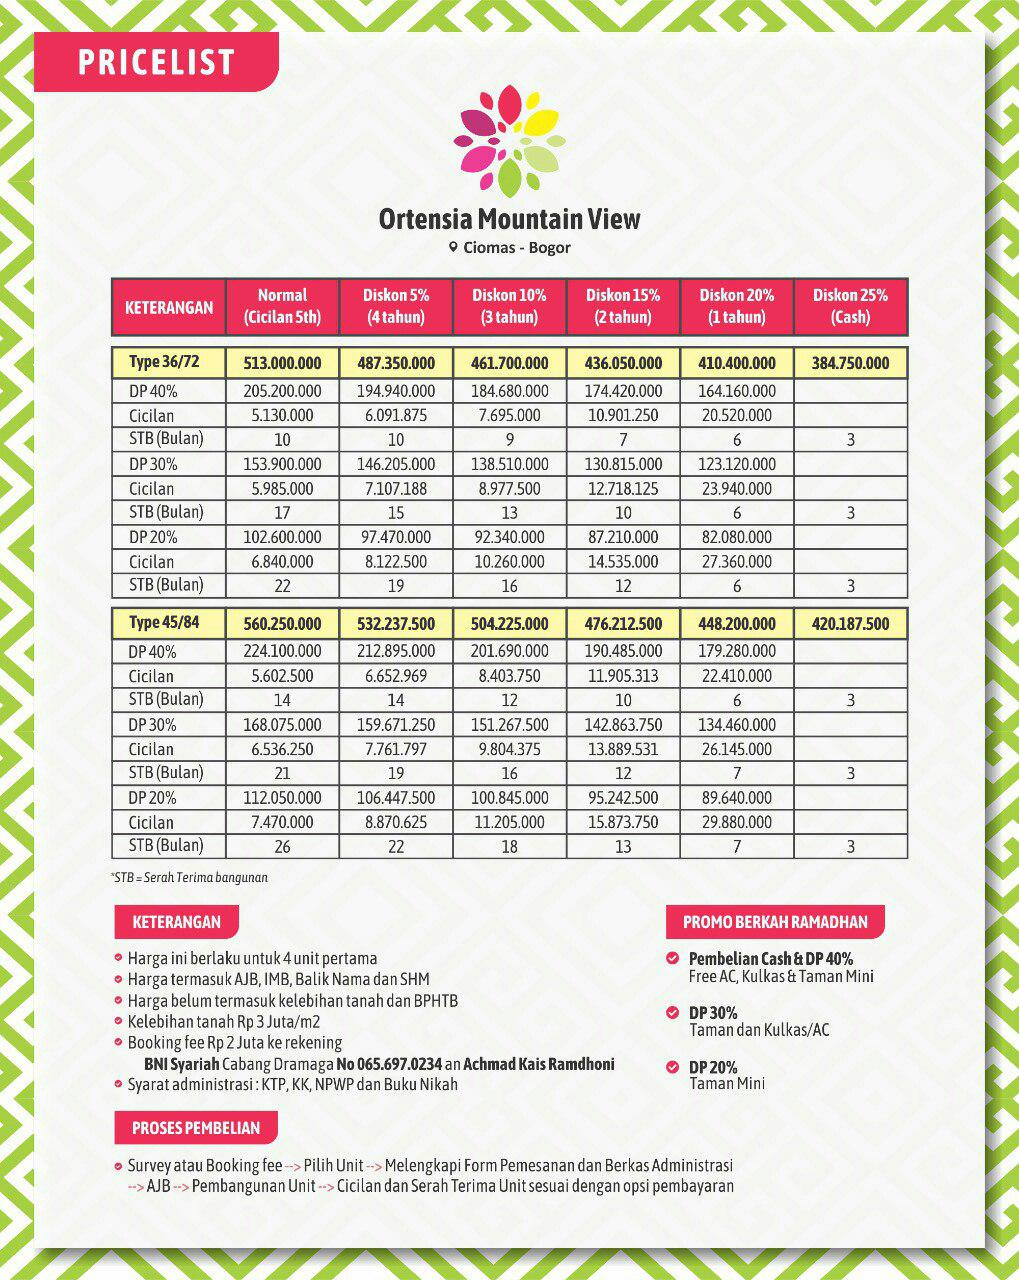 pricelist Ortensia Mountain View